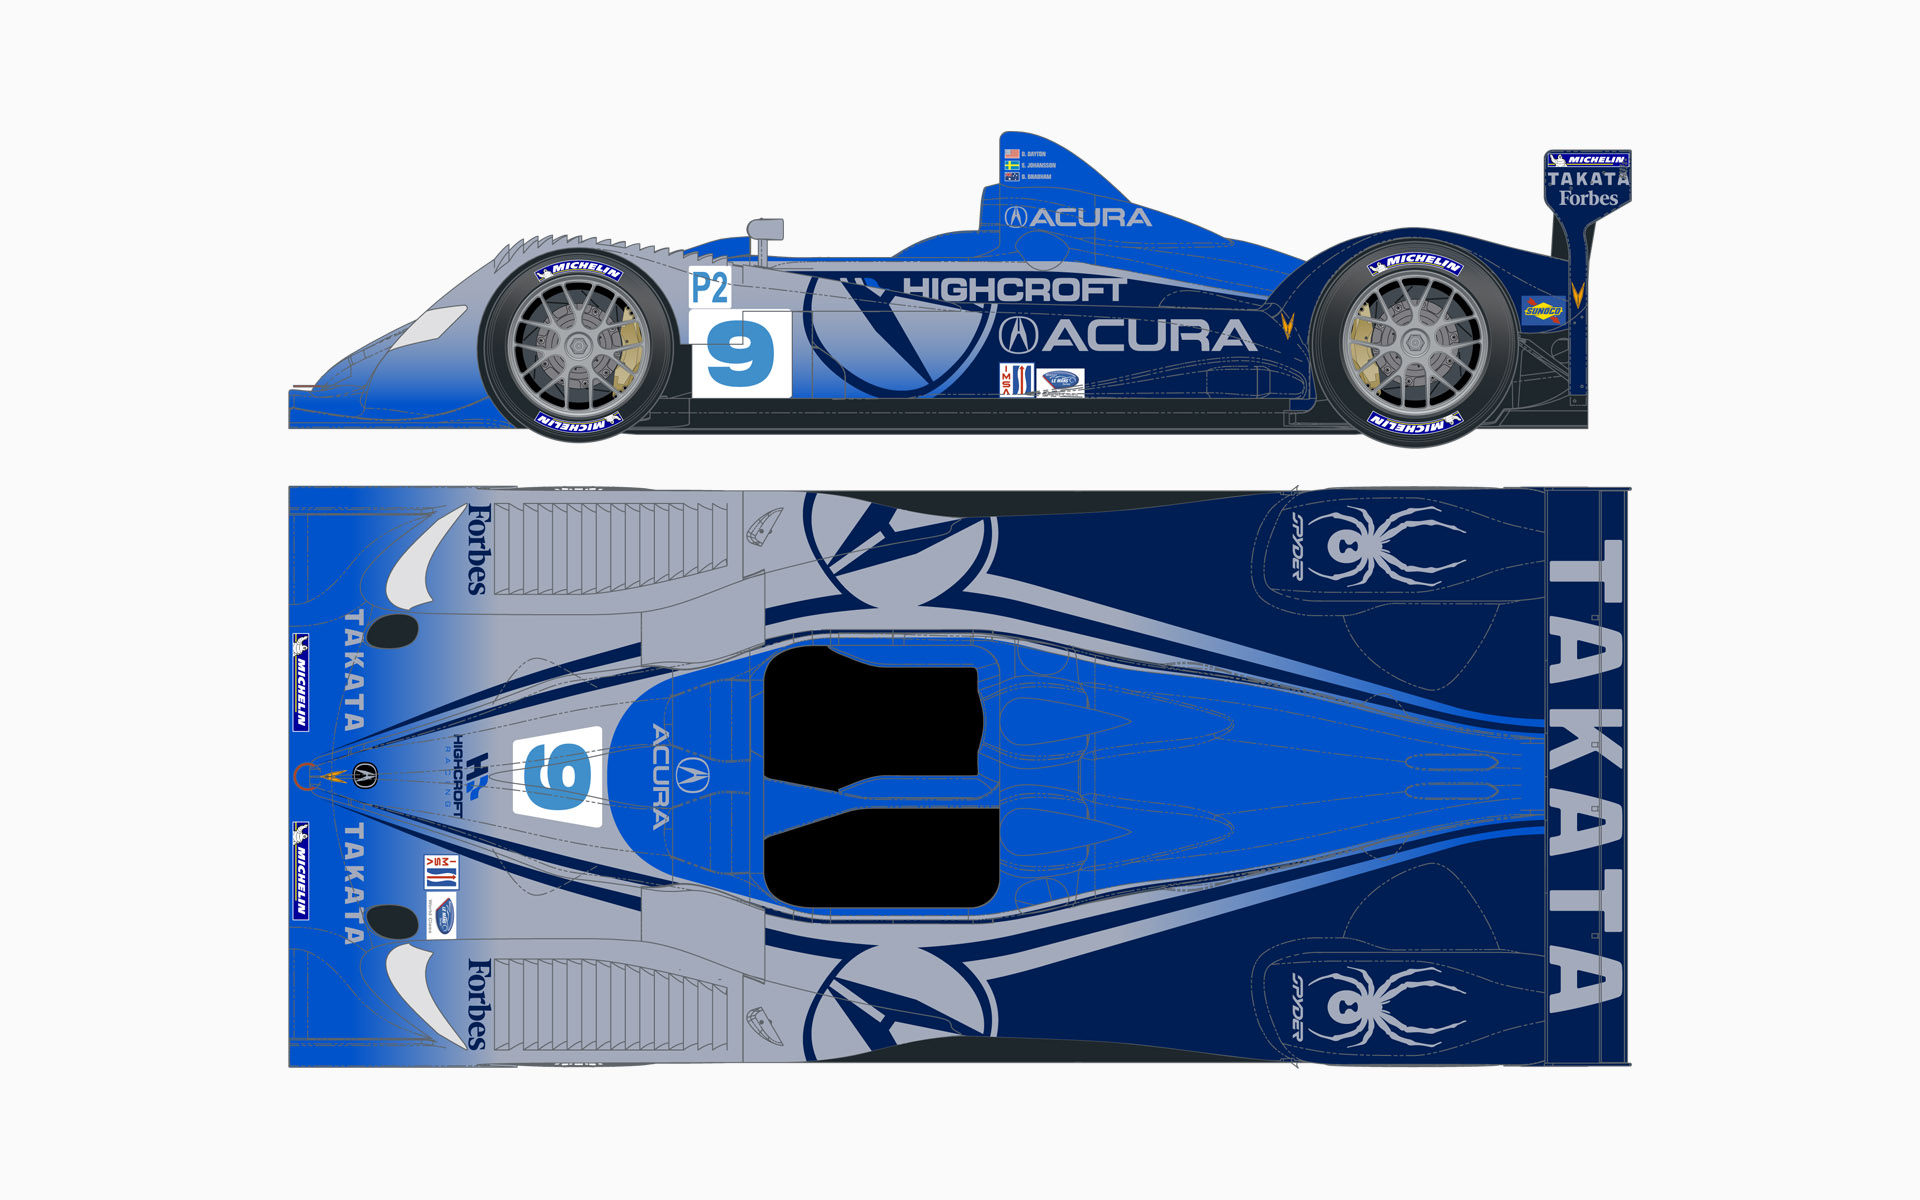 2007 Highcroft Racing Acura ARX-01a LMP2 Livery Elevations